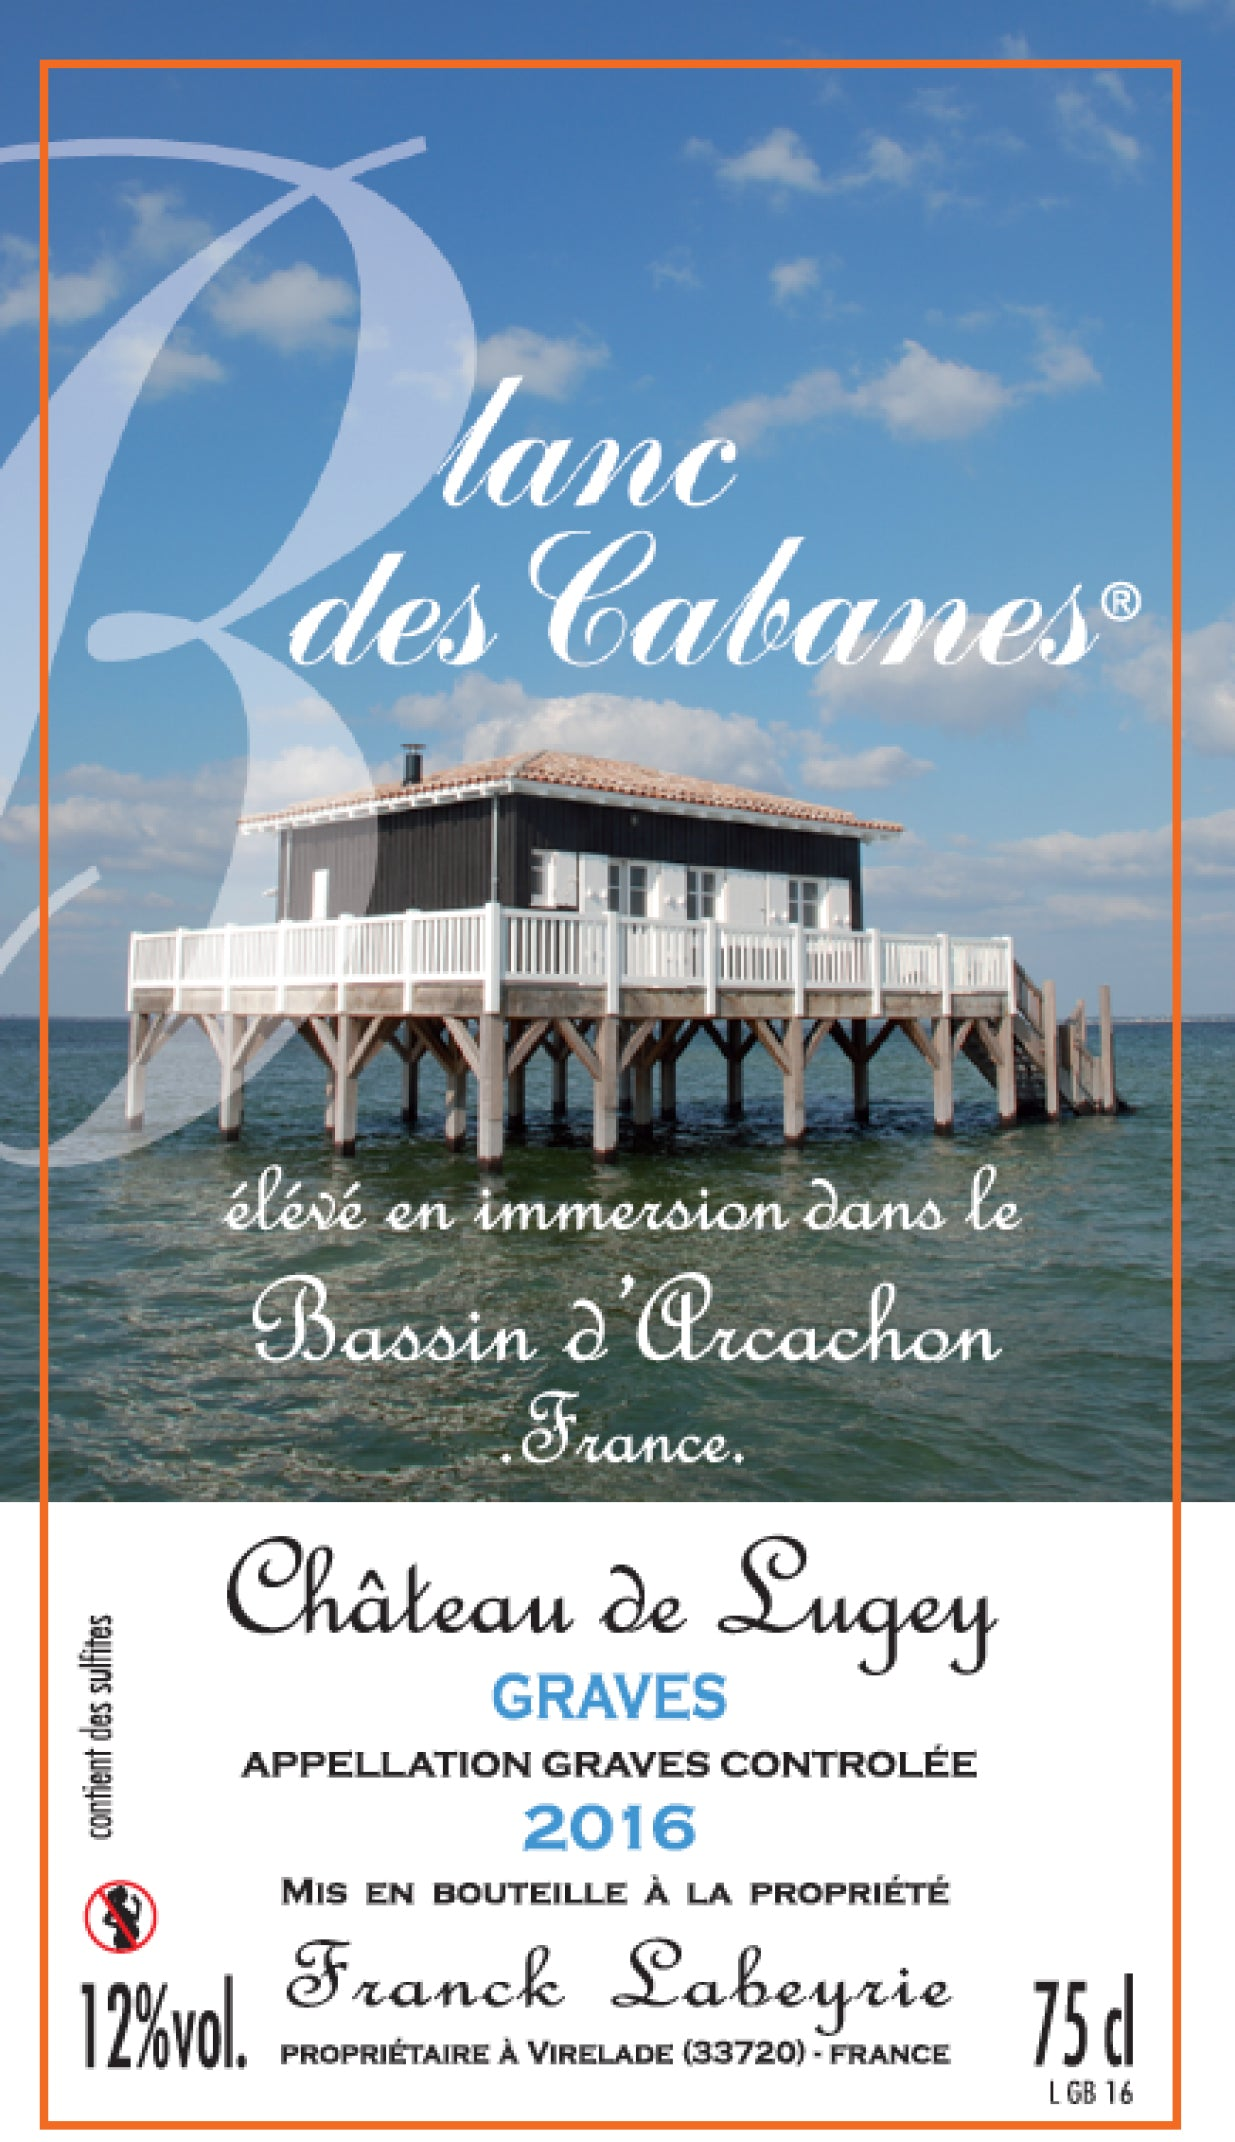 Château de Lugey Blanc des Cabanes 2016 (Sea-originated wine)